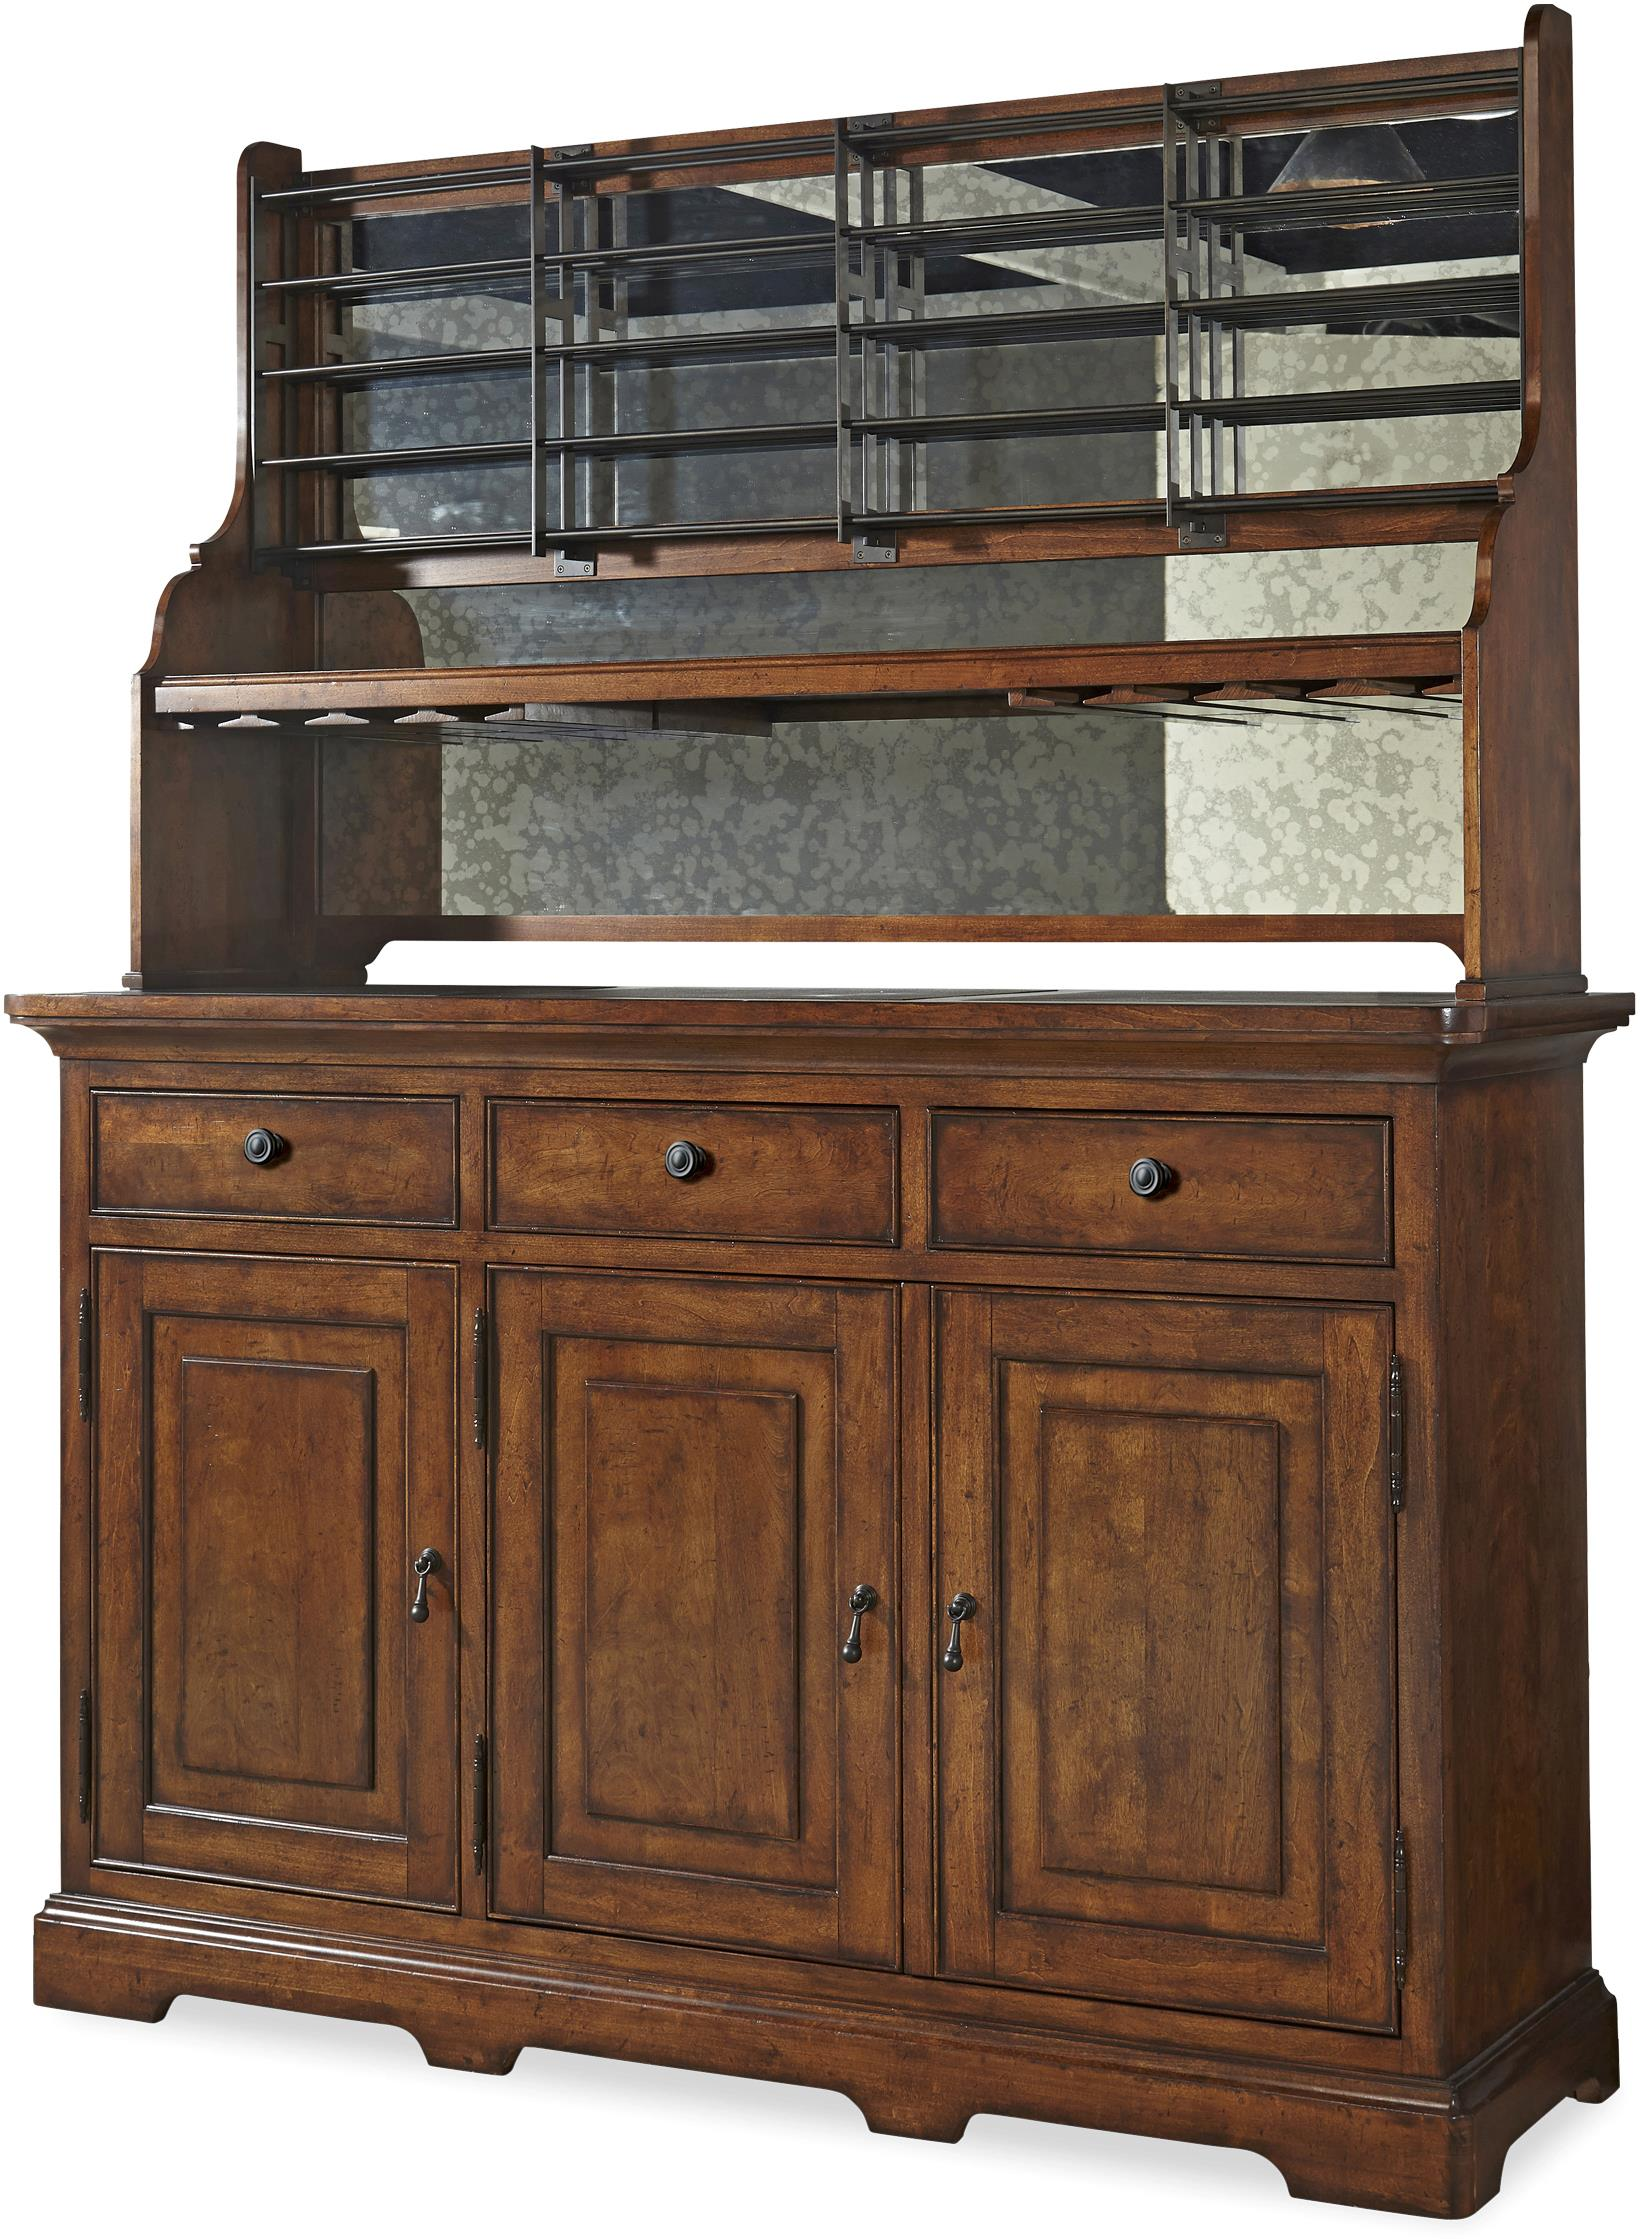 Paula Deen by Universal Dogwood Credenza with Wine Bottle Rack and ...